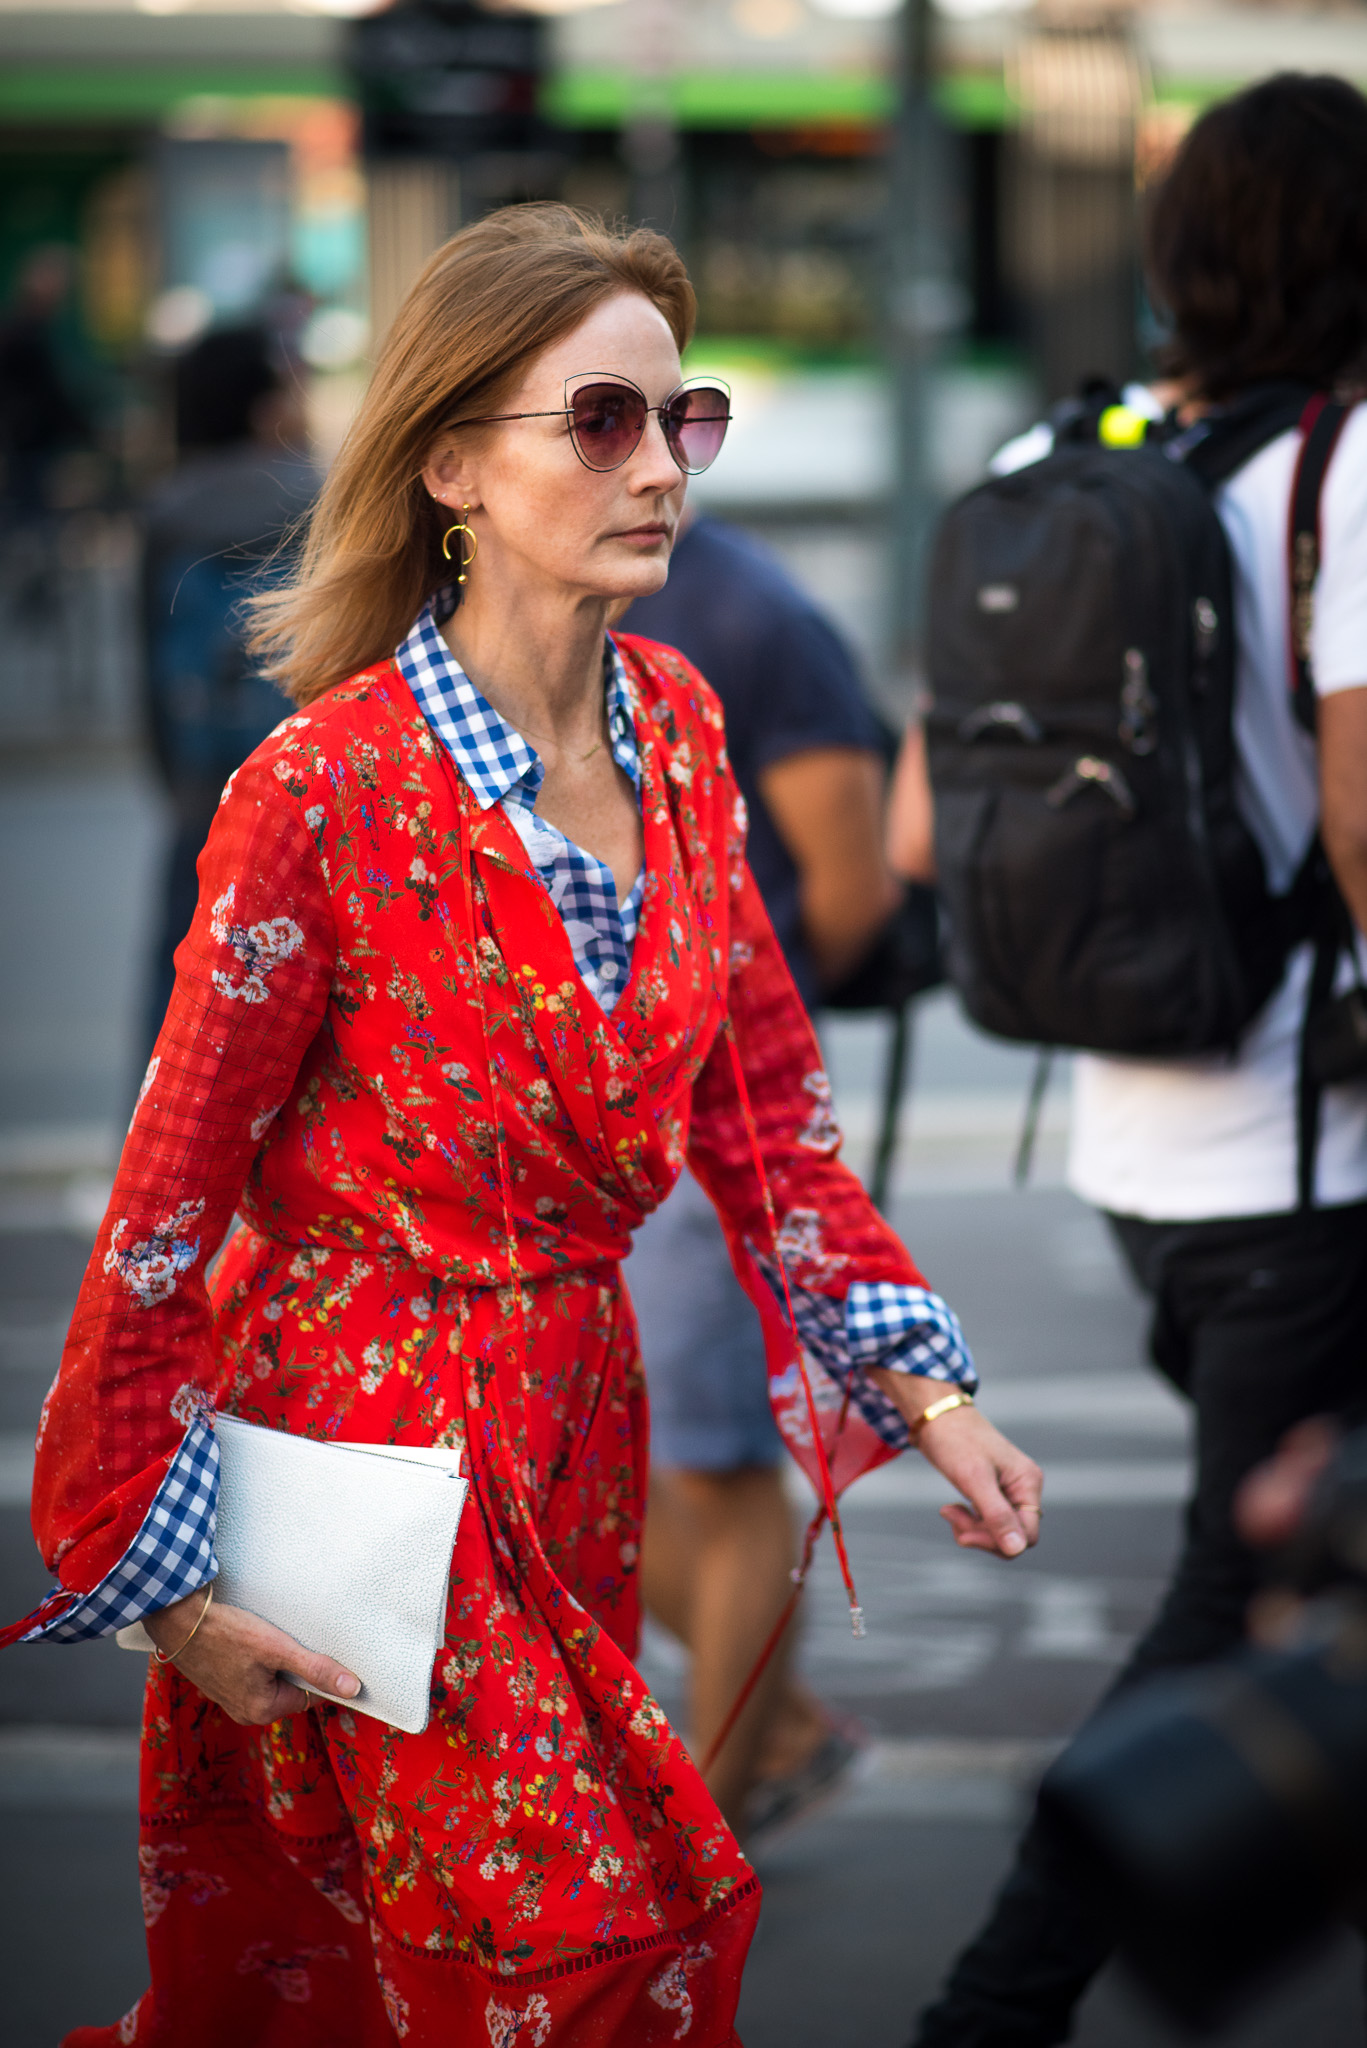 street-style_jil-sander_milan-fashion-week_sept-2016_www-annikasomething-com-7